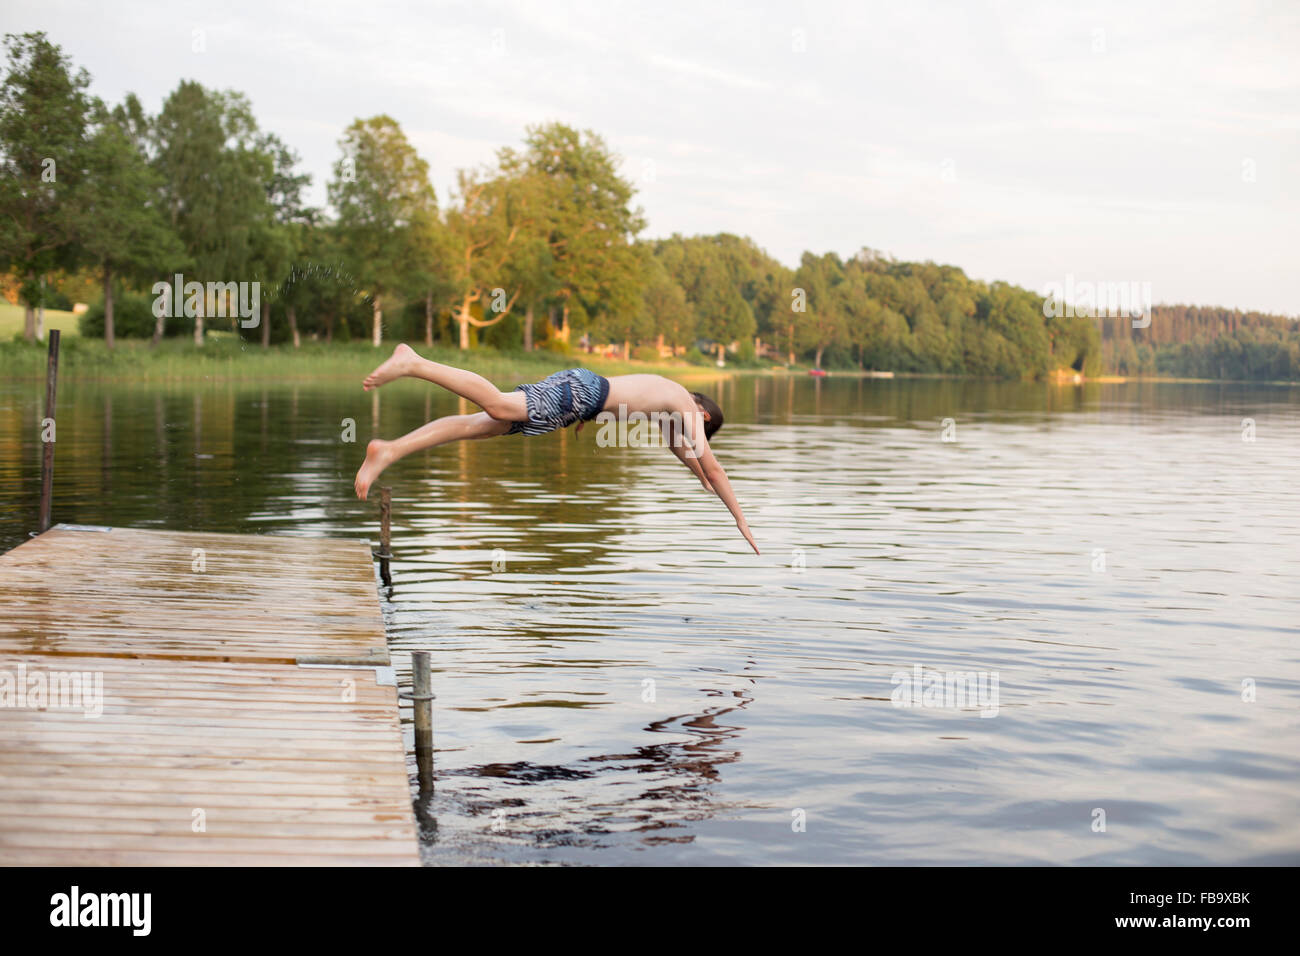 Sweden, Smaland, Braarpasjon, Boy (12-13) jumping into lake from jetty - Stock Image